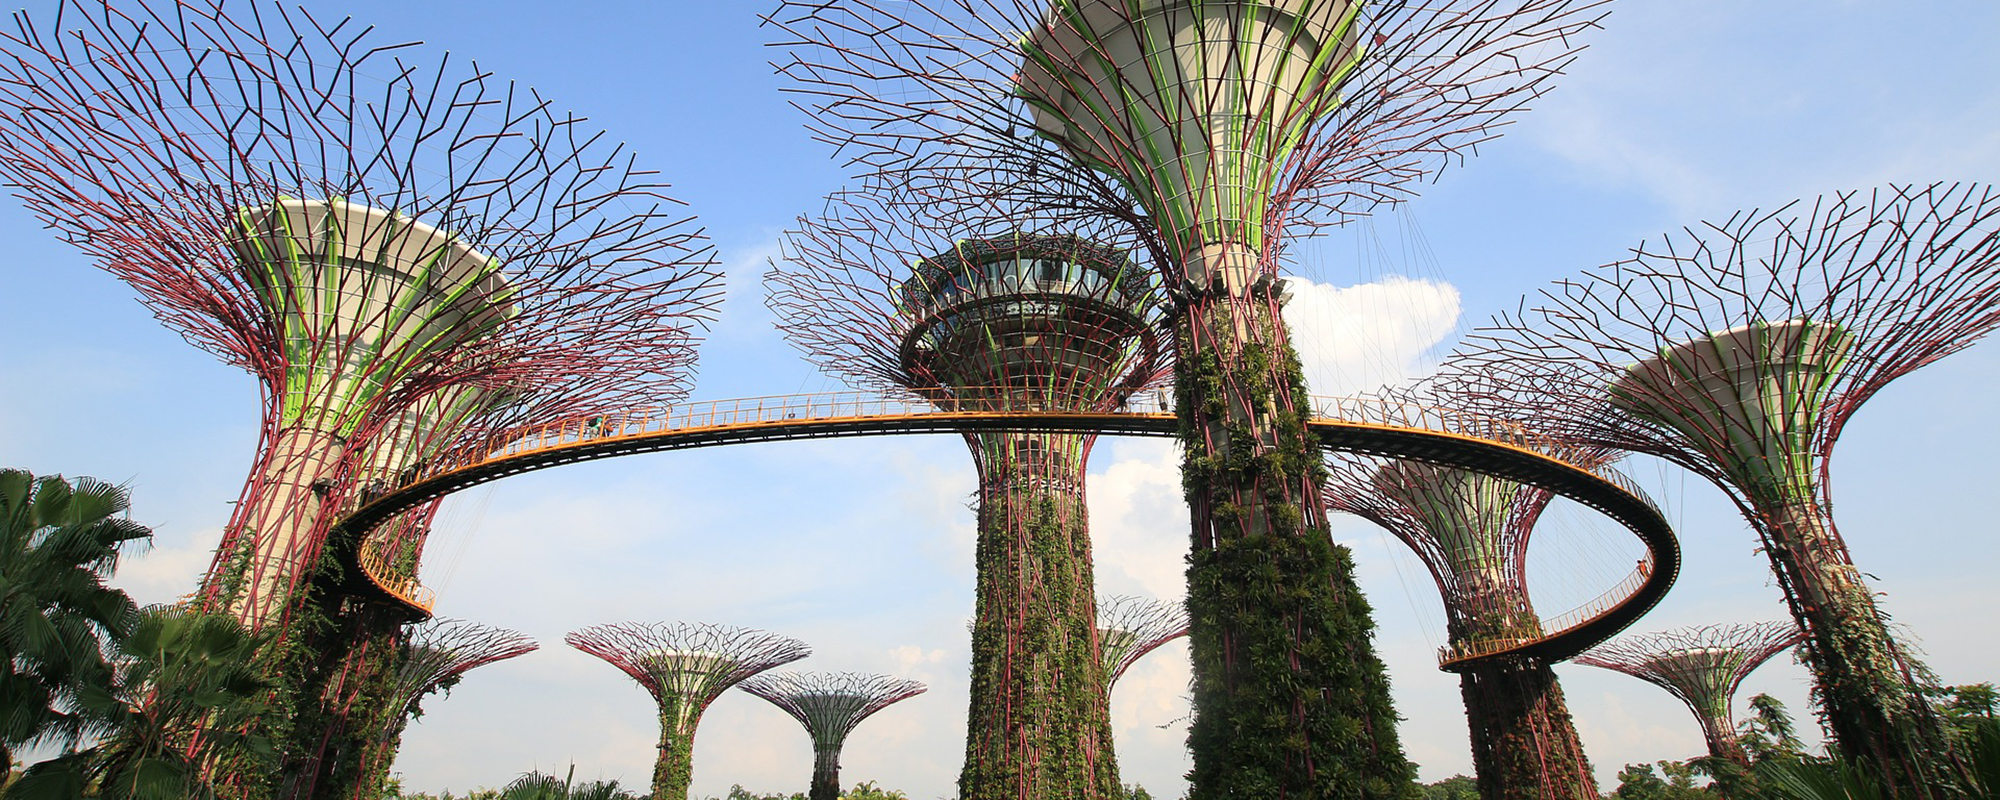 Tall artistic buildings that resemble trees that also have a skywalk connecting some of them together.